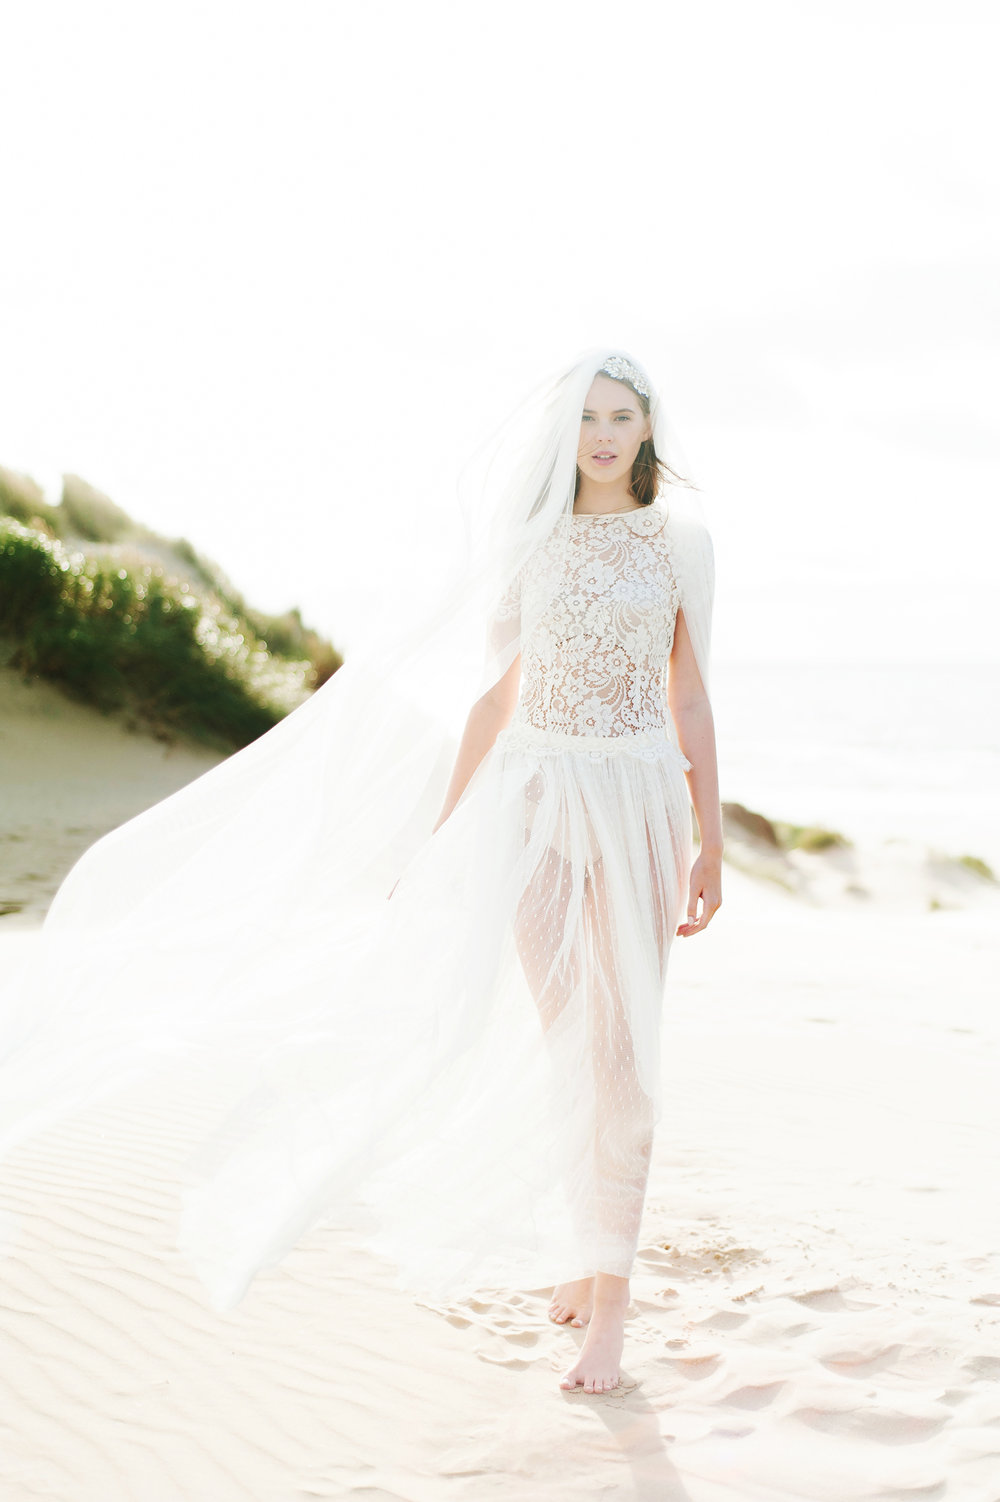 Kate-Beaumont-Wedding-Dresses-Formby-Beach-Emma-Pilkington-17.jpg